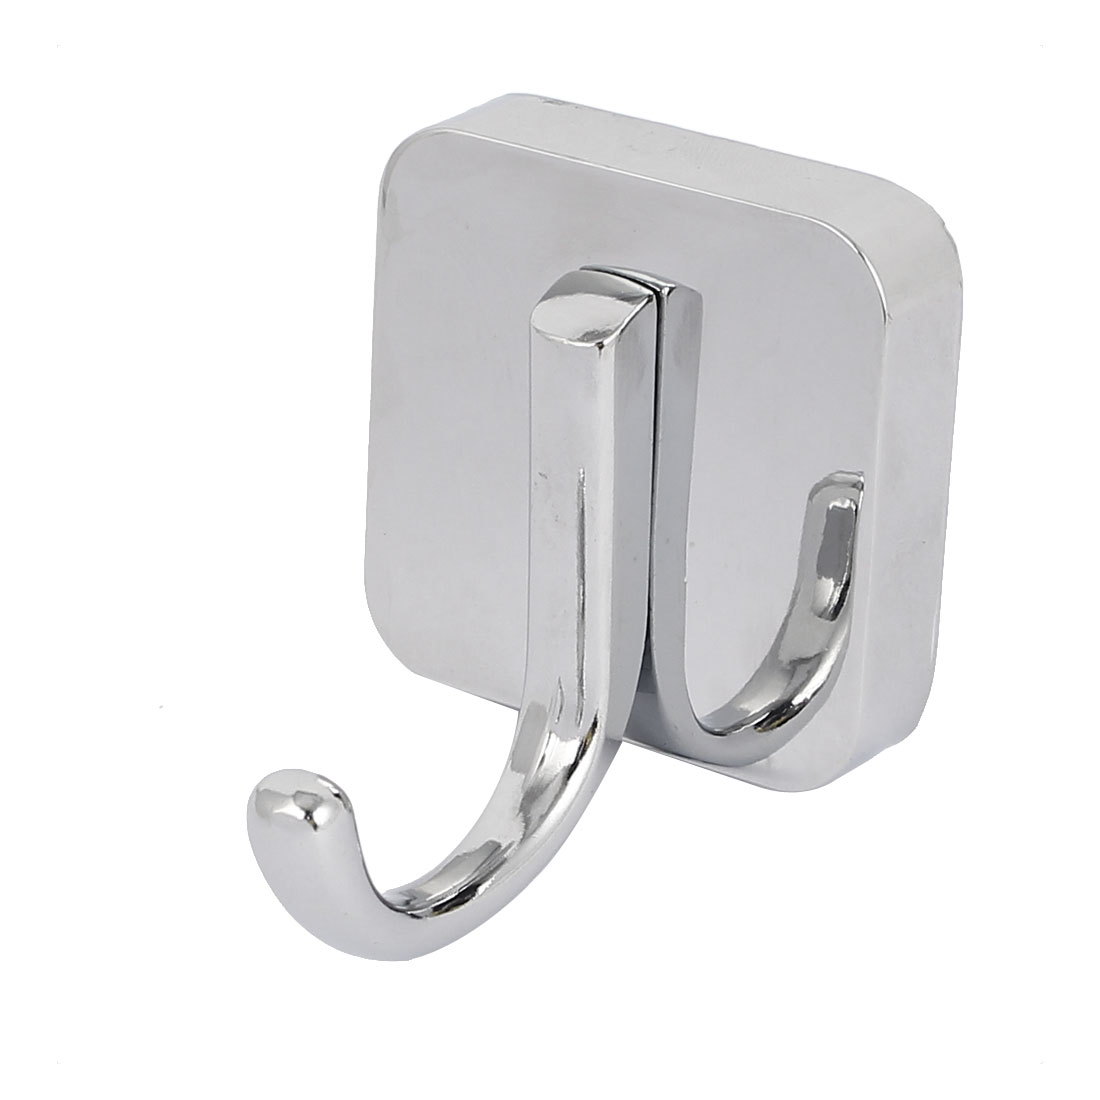 Bathroom Clothes Hanging Wall Mounted Zinc Alloy Chrome Plated Single Hanger Hook Silver Tone